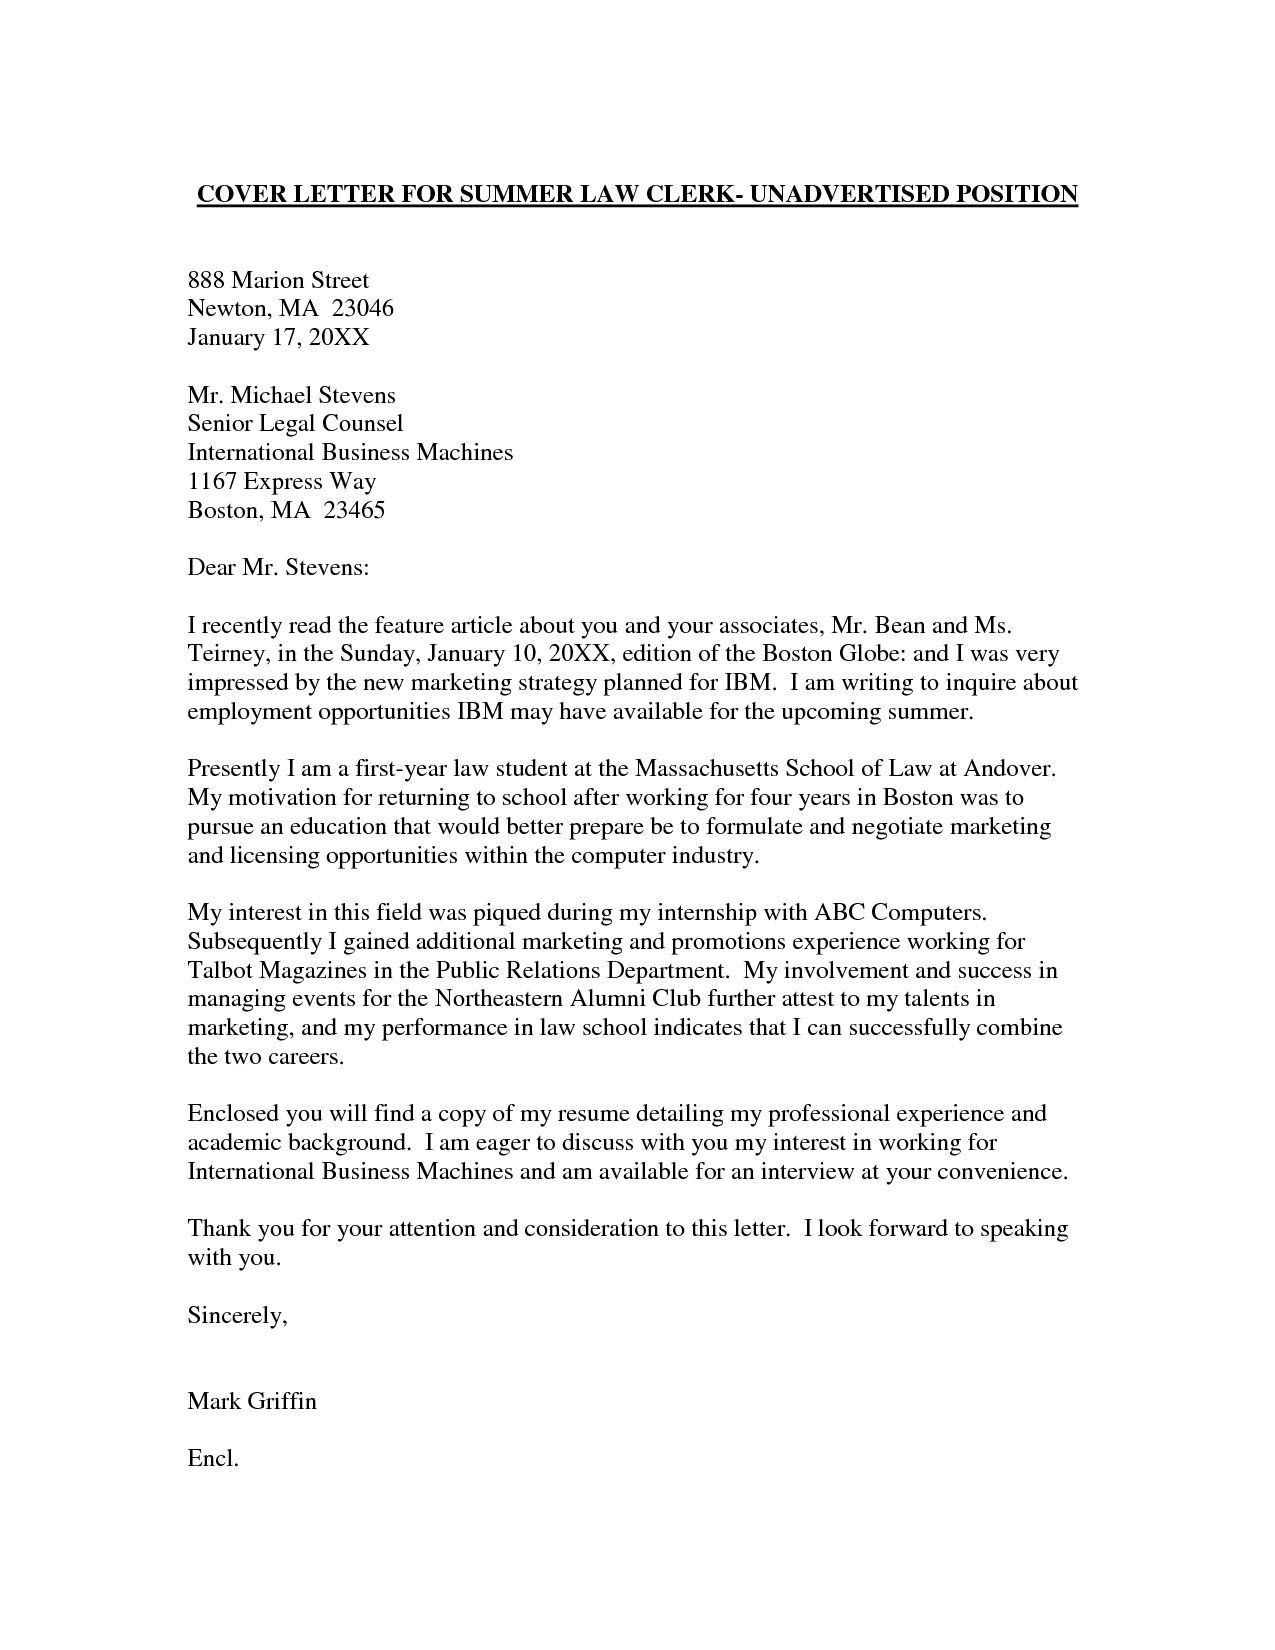 25+ Cover Letter For Employment | Cover Letter Examples For Job ...